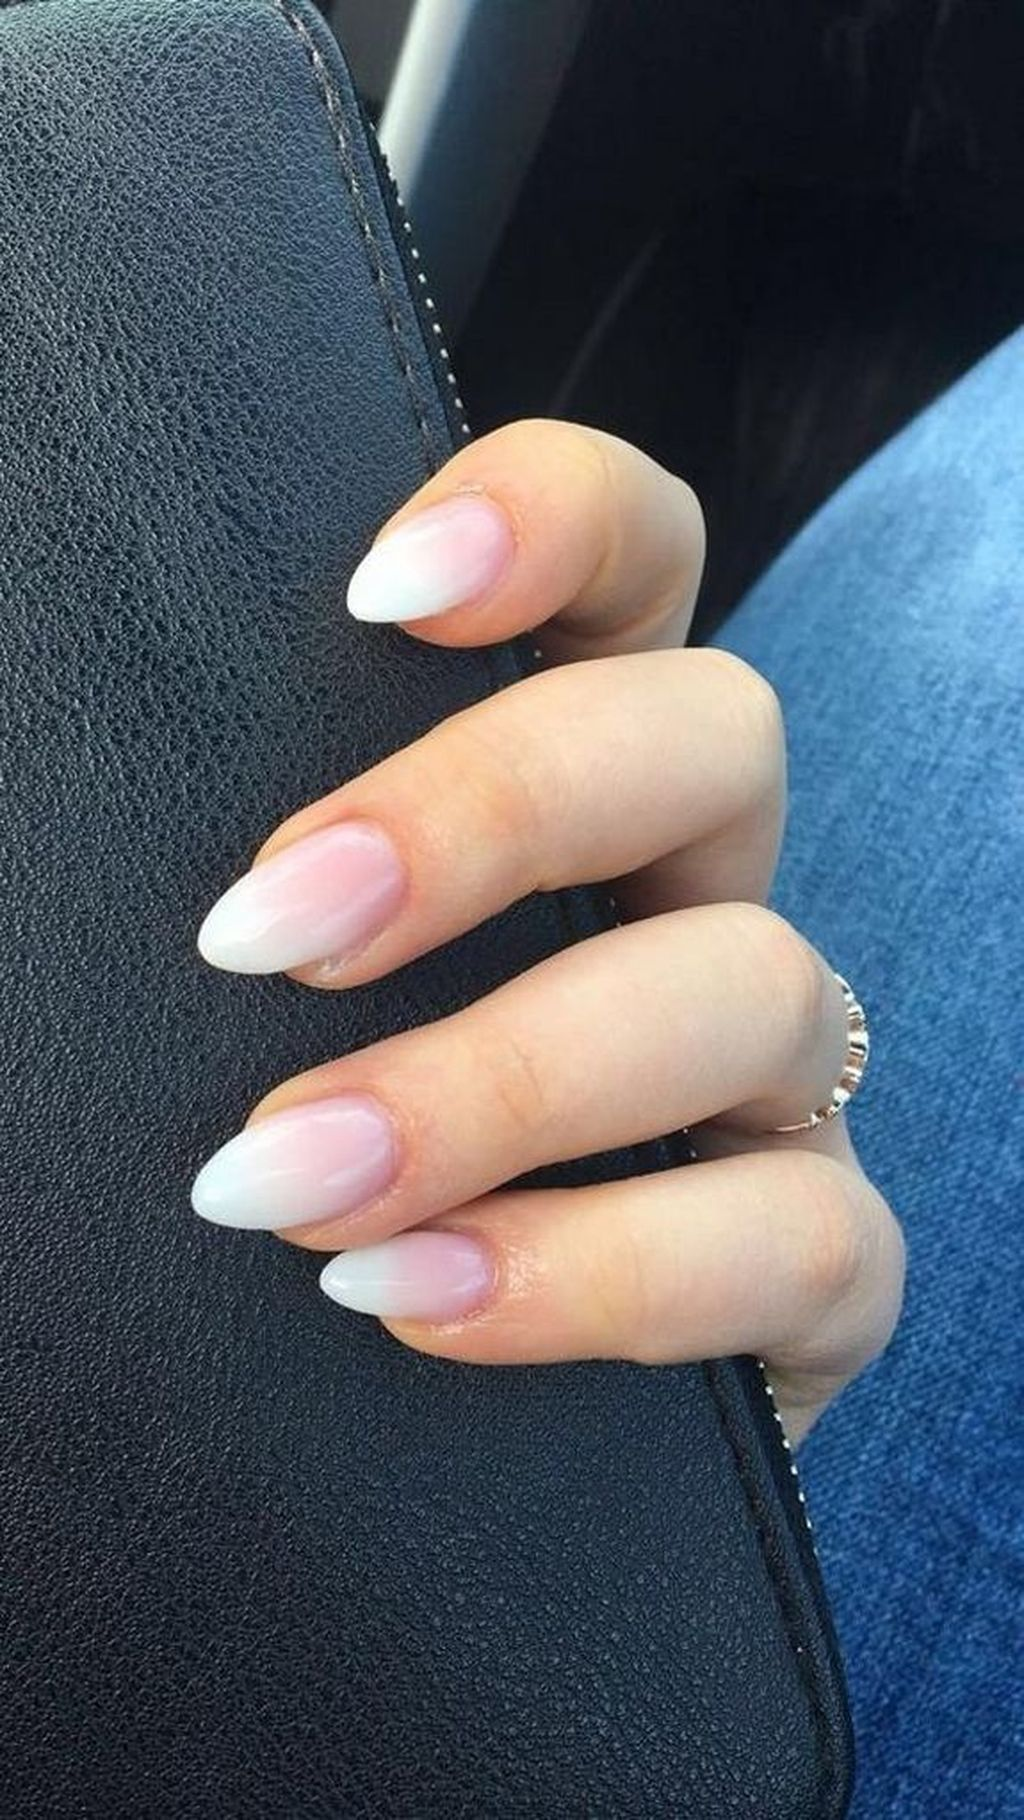 39 Hottest Ombre Nails Art Design Ideas To Try This Season Oval Acrylic Nails Coffin Nails Ombre Ombre Acrylic Nails